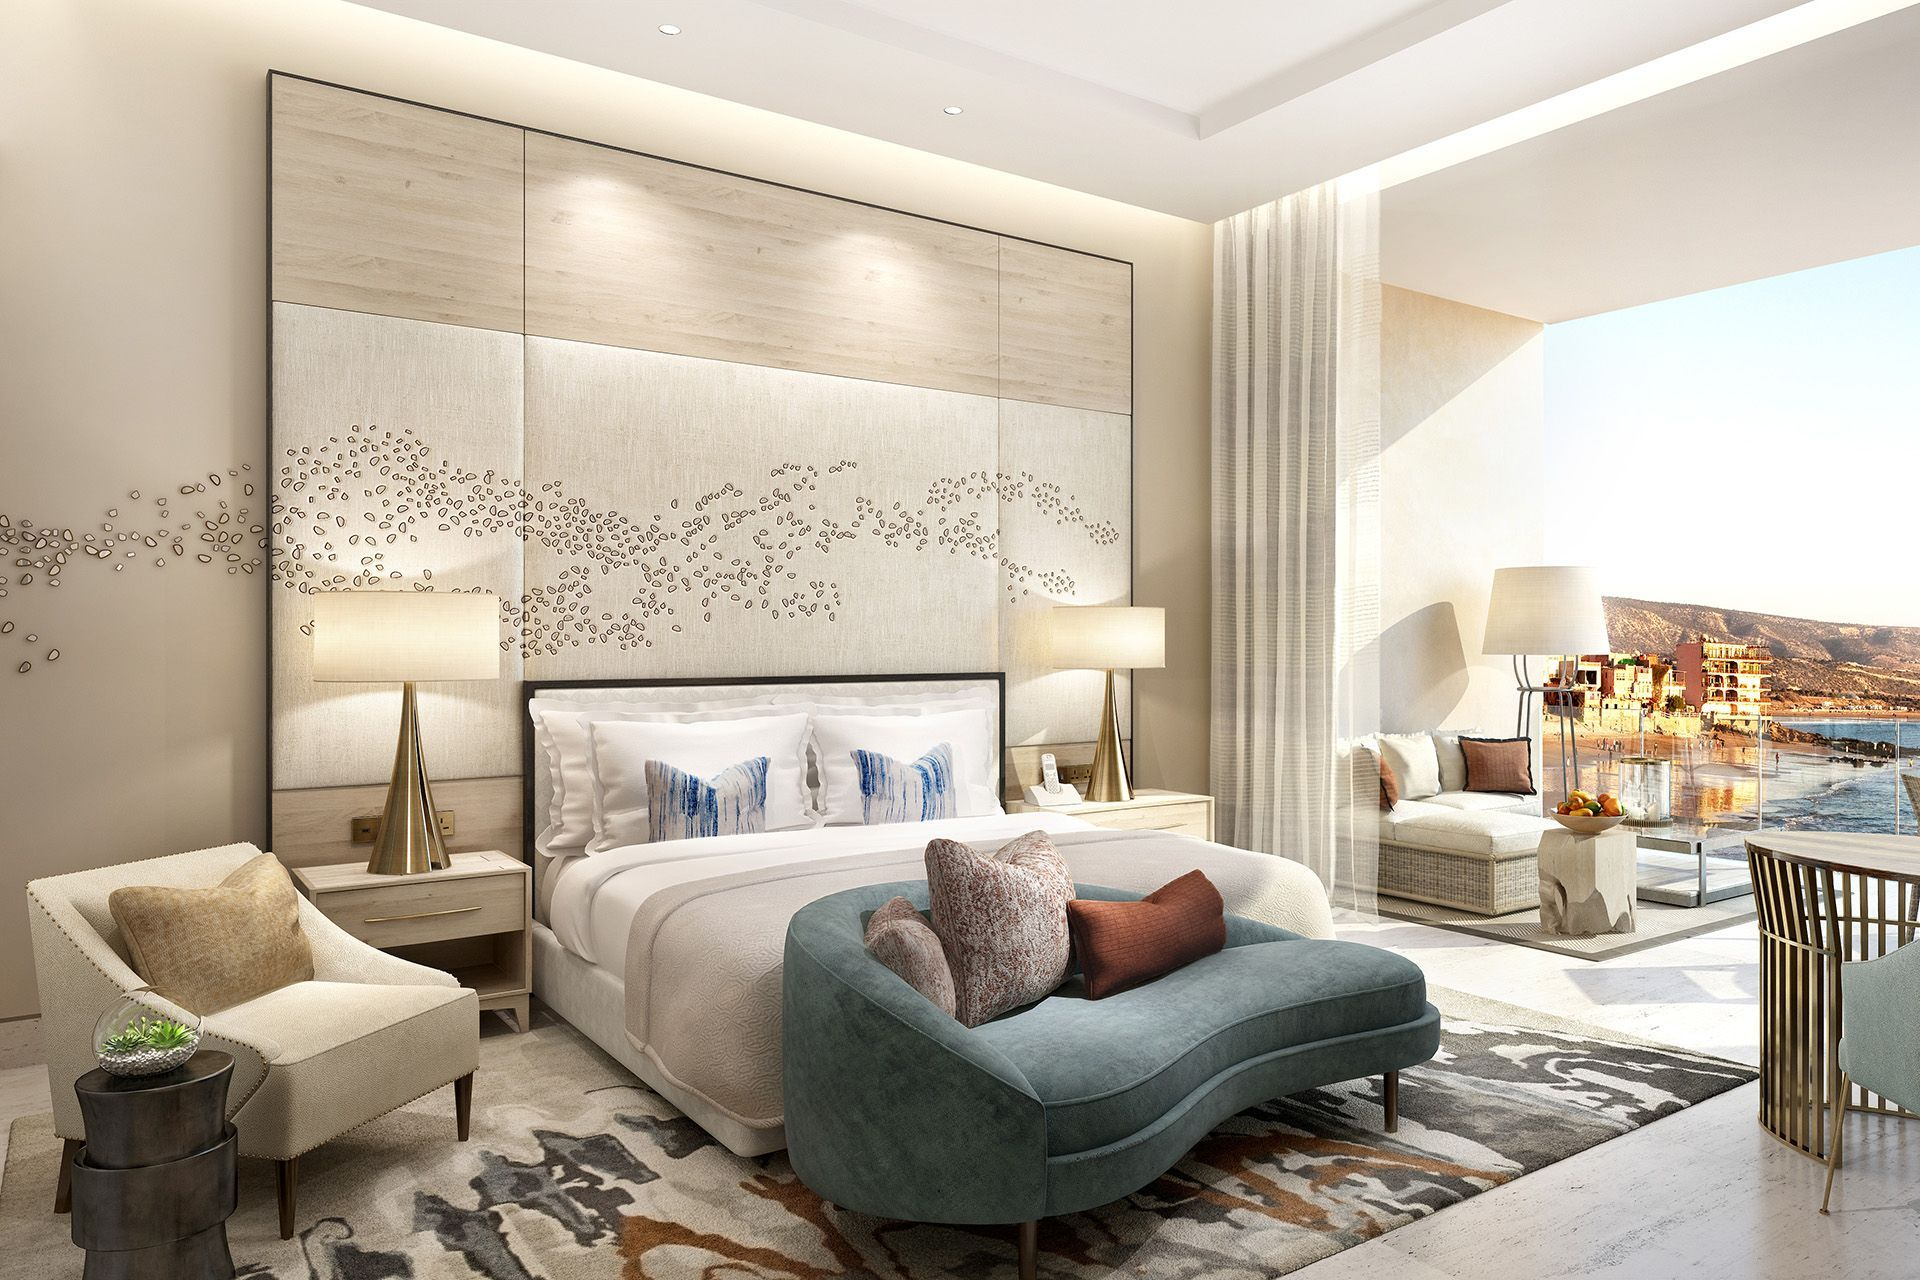 Four seasons taghazout interior designers wimberly for Modern bedroom decor